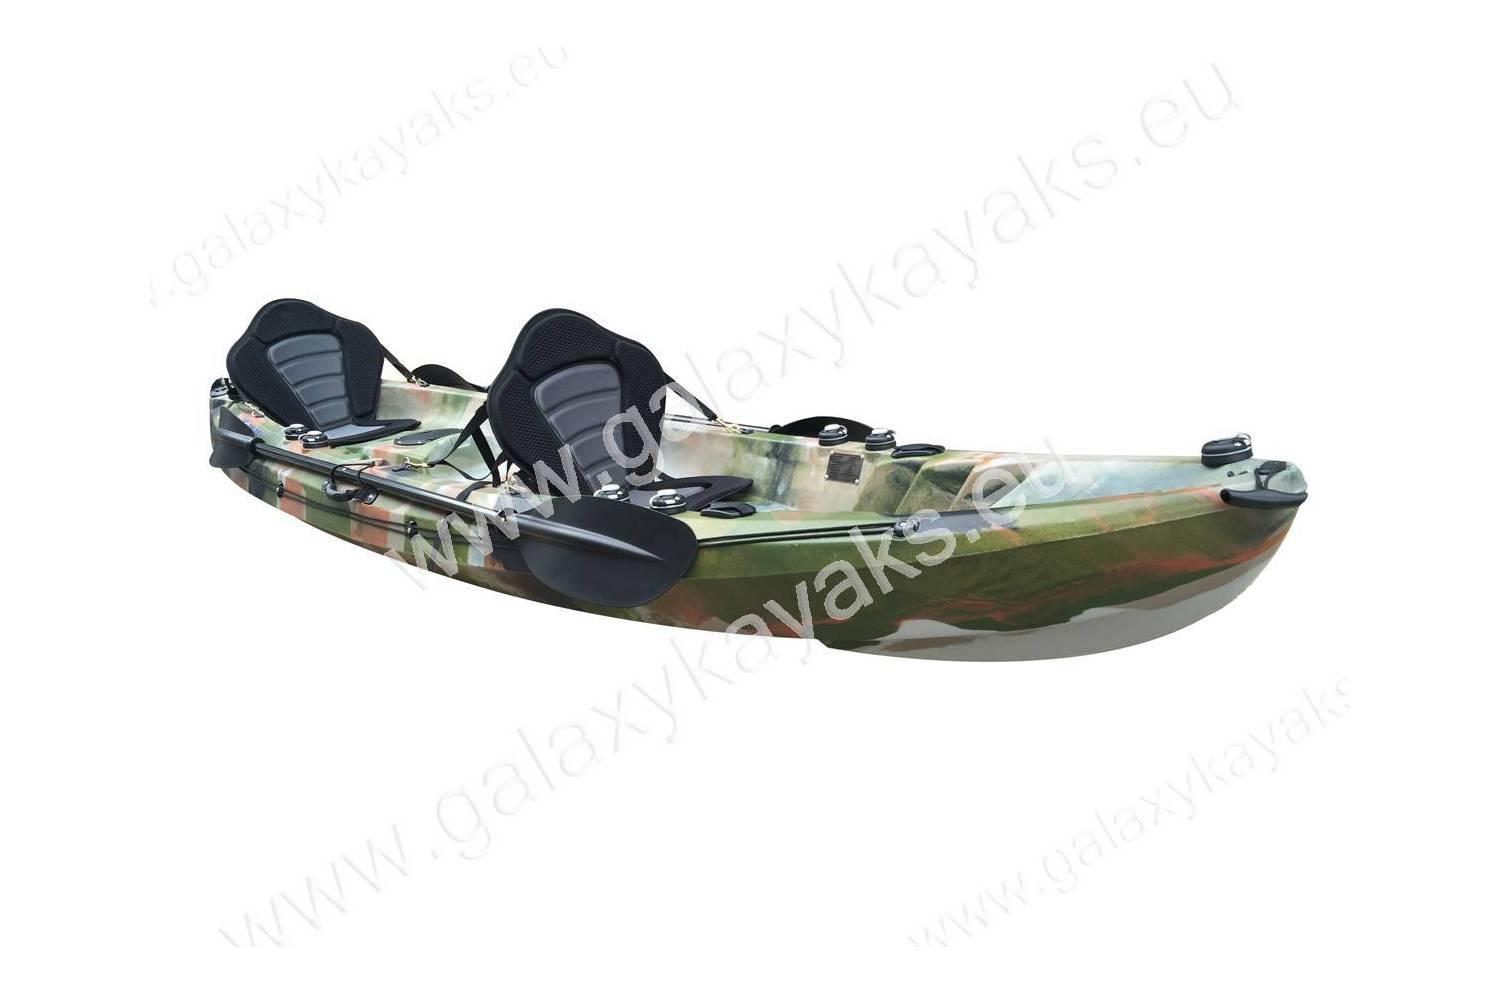 Cruz fisher tandem fishing kayak galaxy kayaks for Best tandem fishing kayak